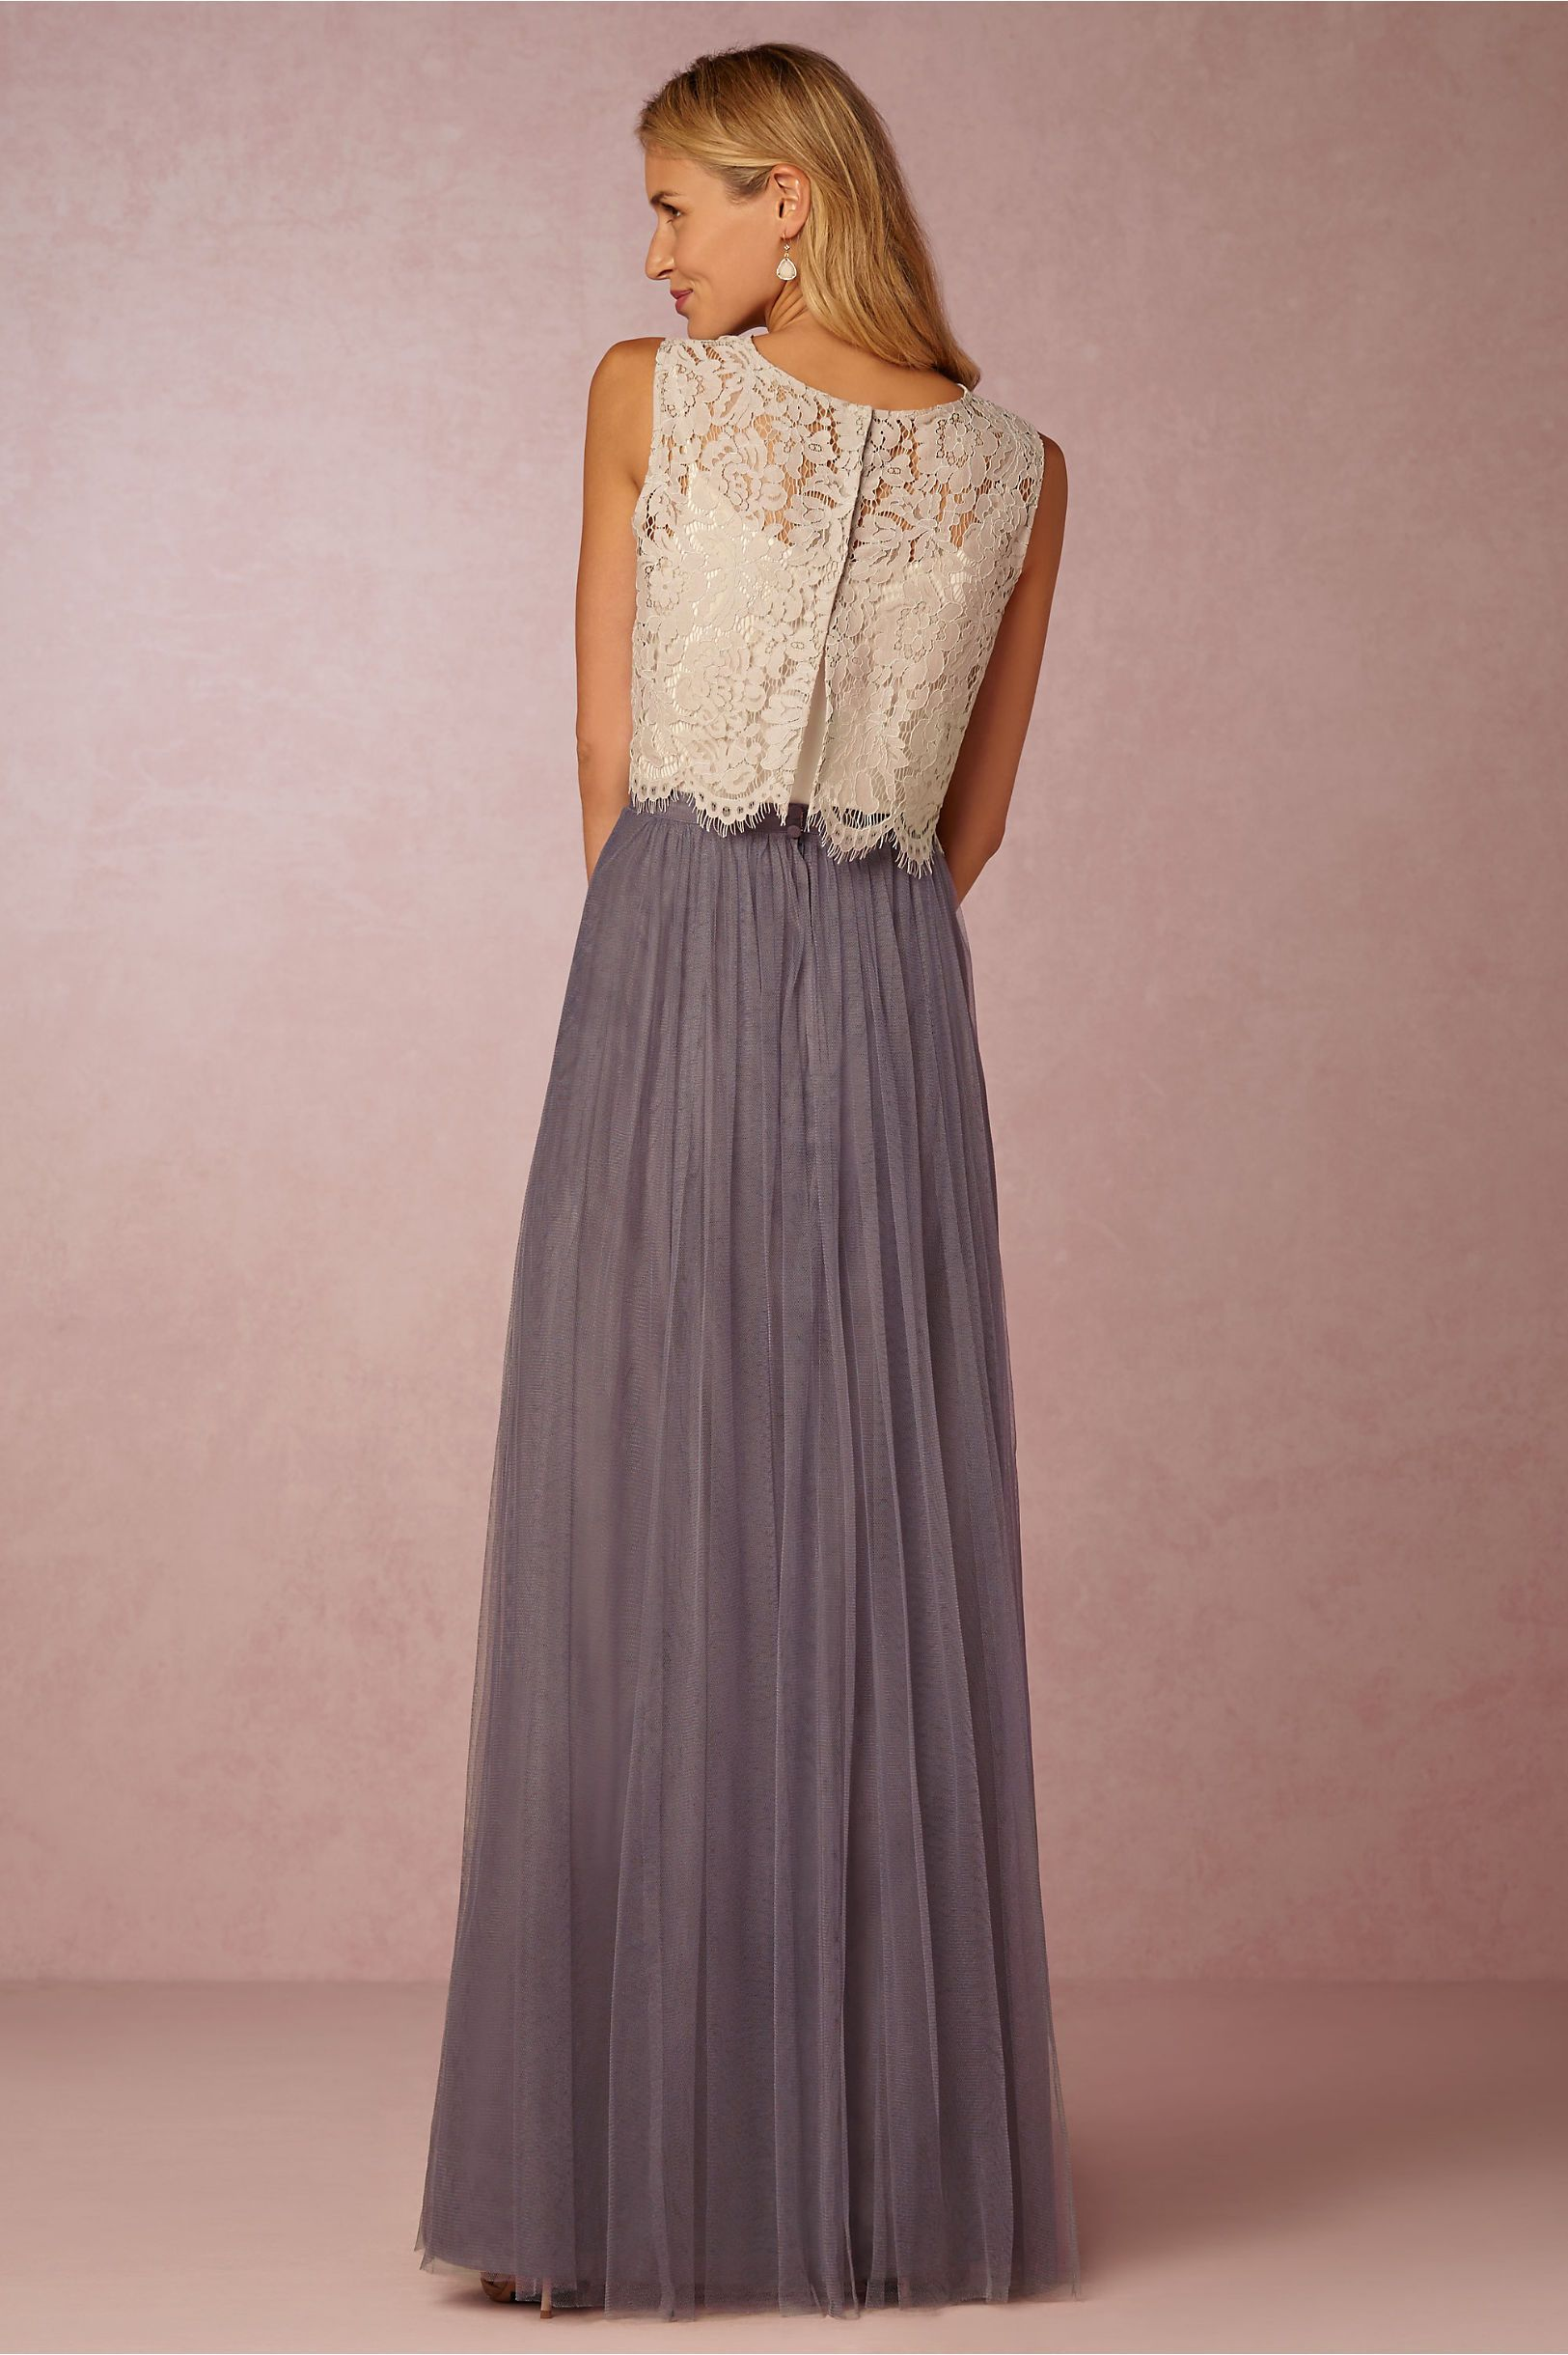 Wedding Dress Skirt And Top Of Cleo Top Louise Skirt In Bridesmaids Maid Of Honor